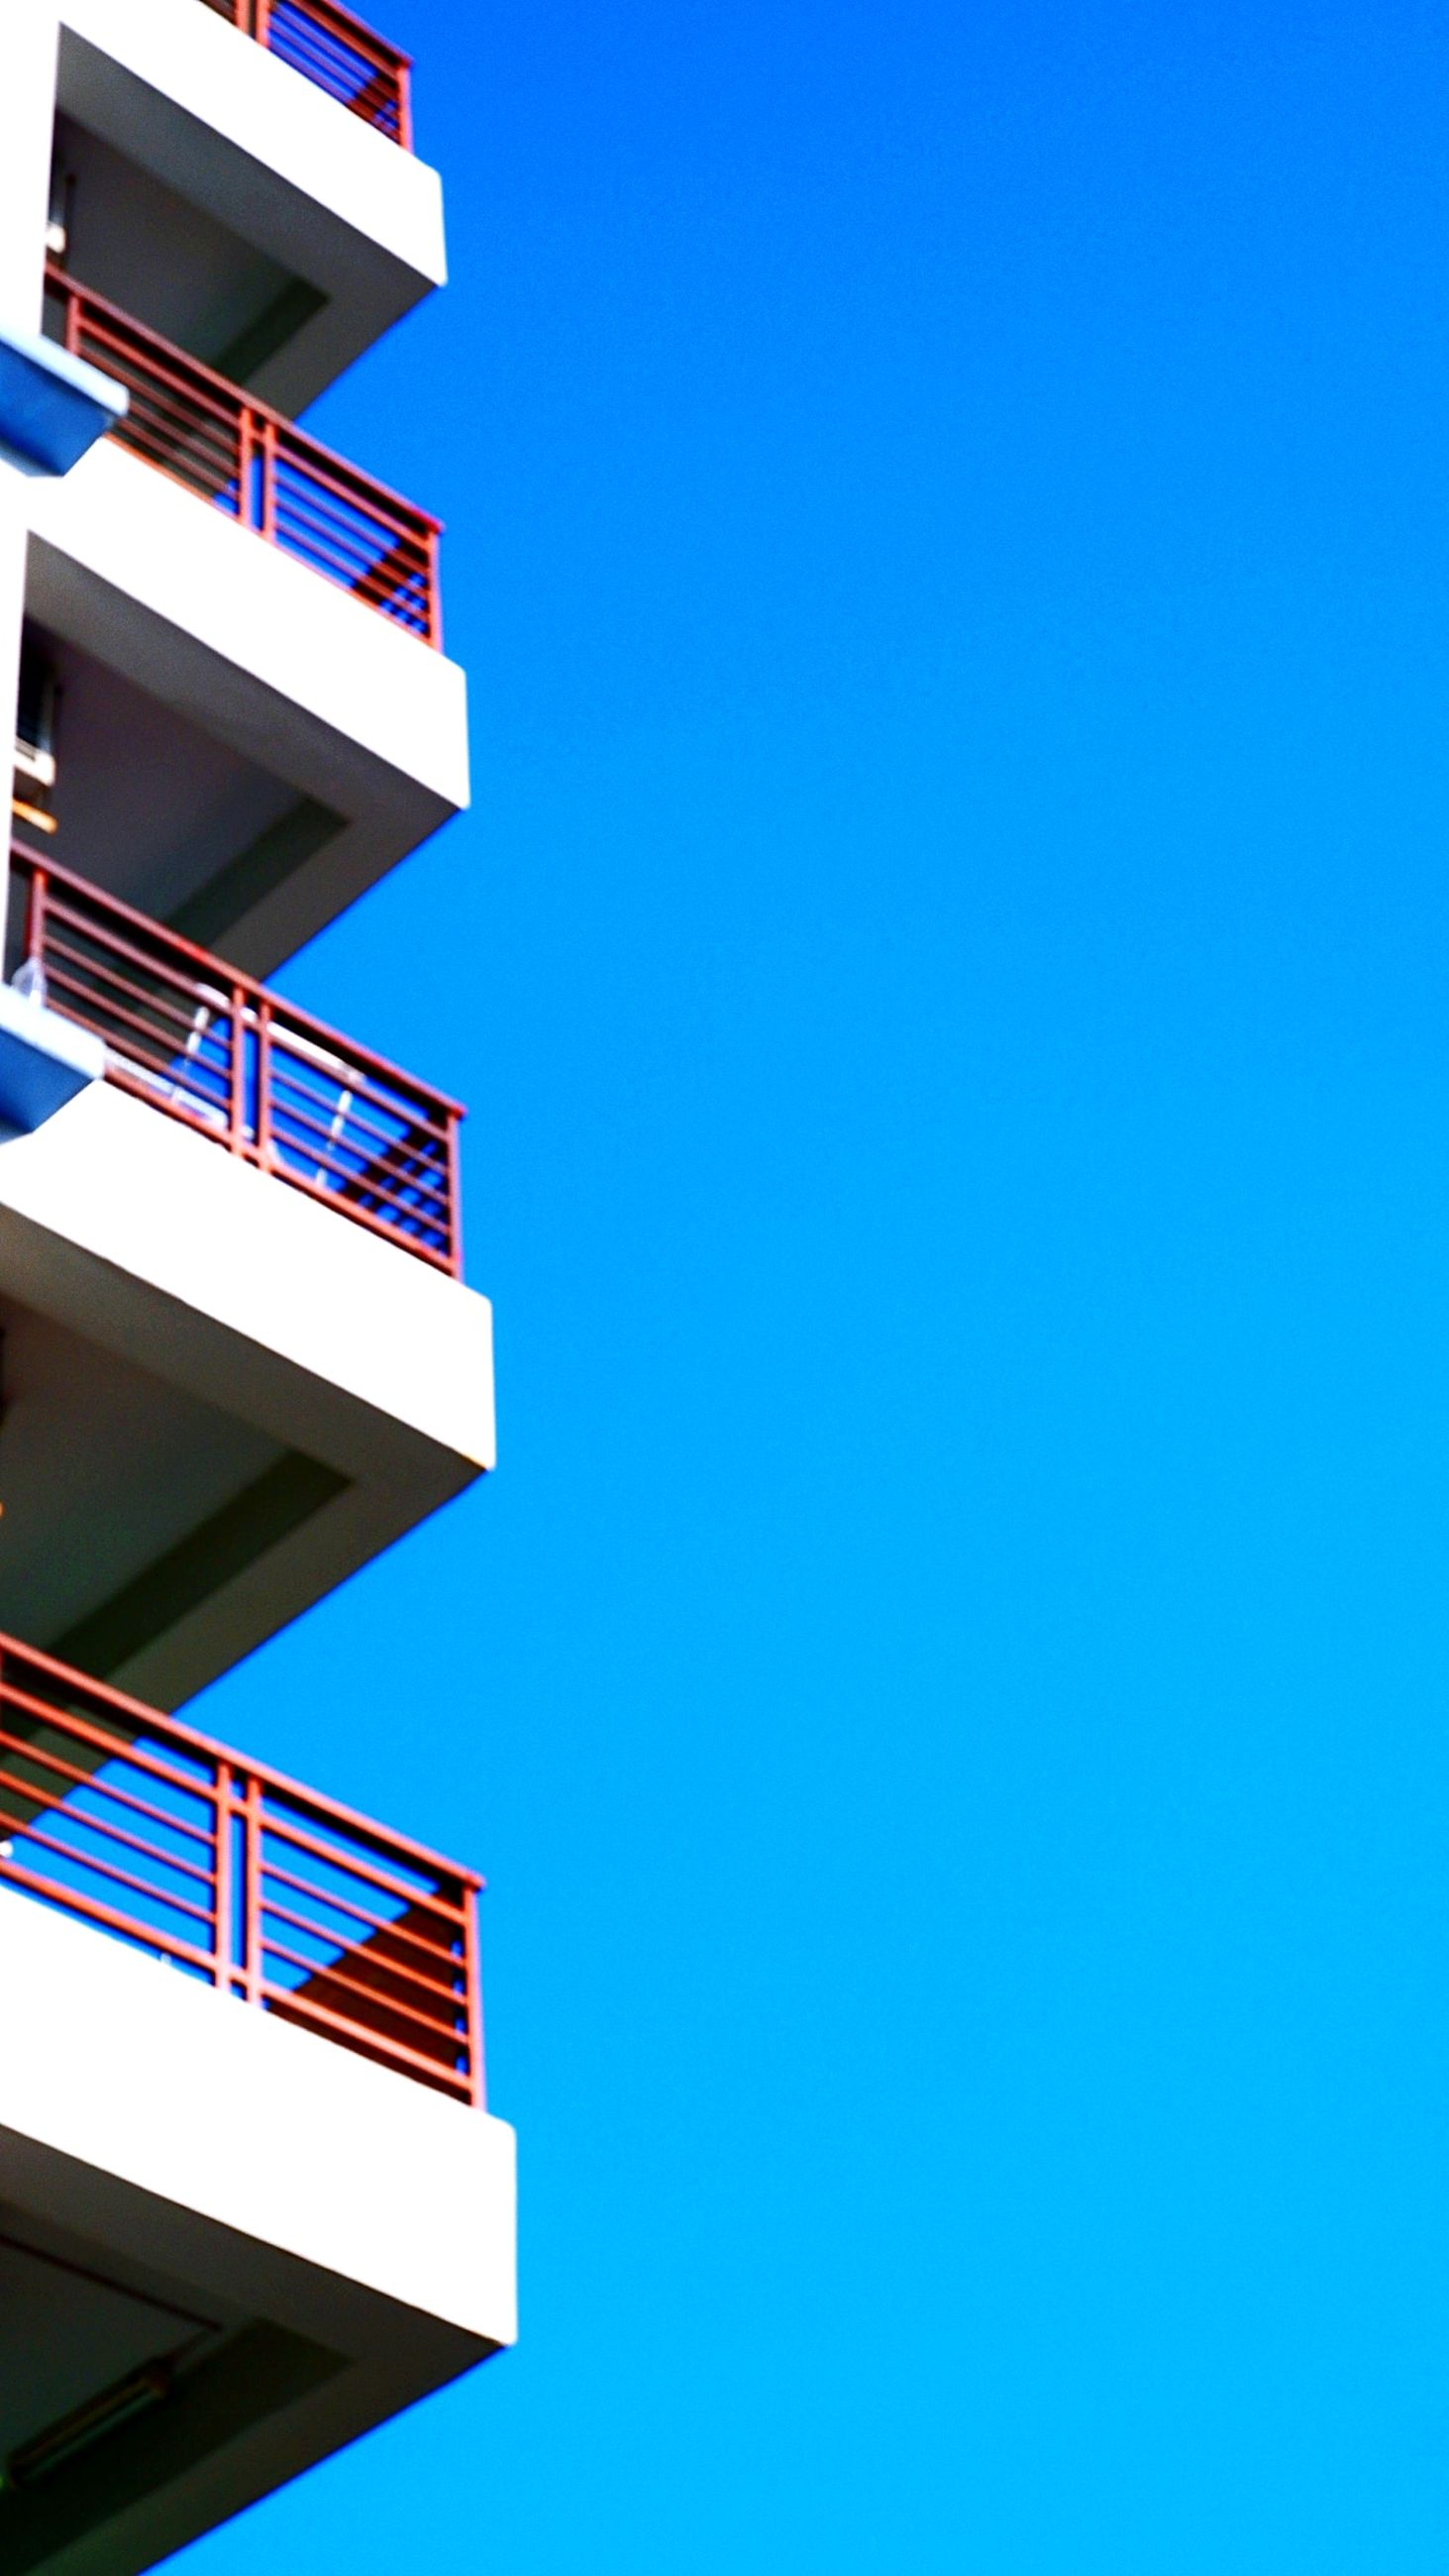 blue, architecture, built structure, clear sky, building exterior, sky, copy space, building, no people, tower, low angle view, nature, city, staircase, outdoors, day, sunny, line, residential district, facade